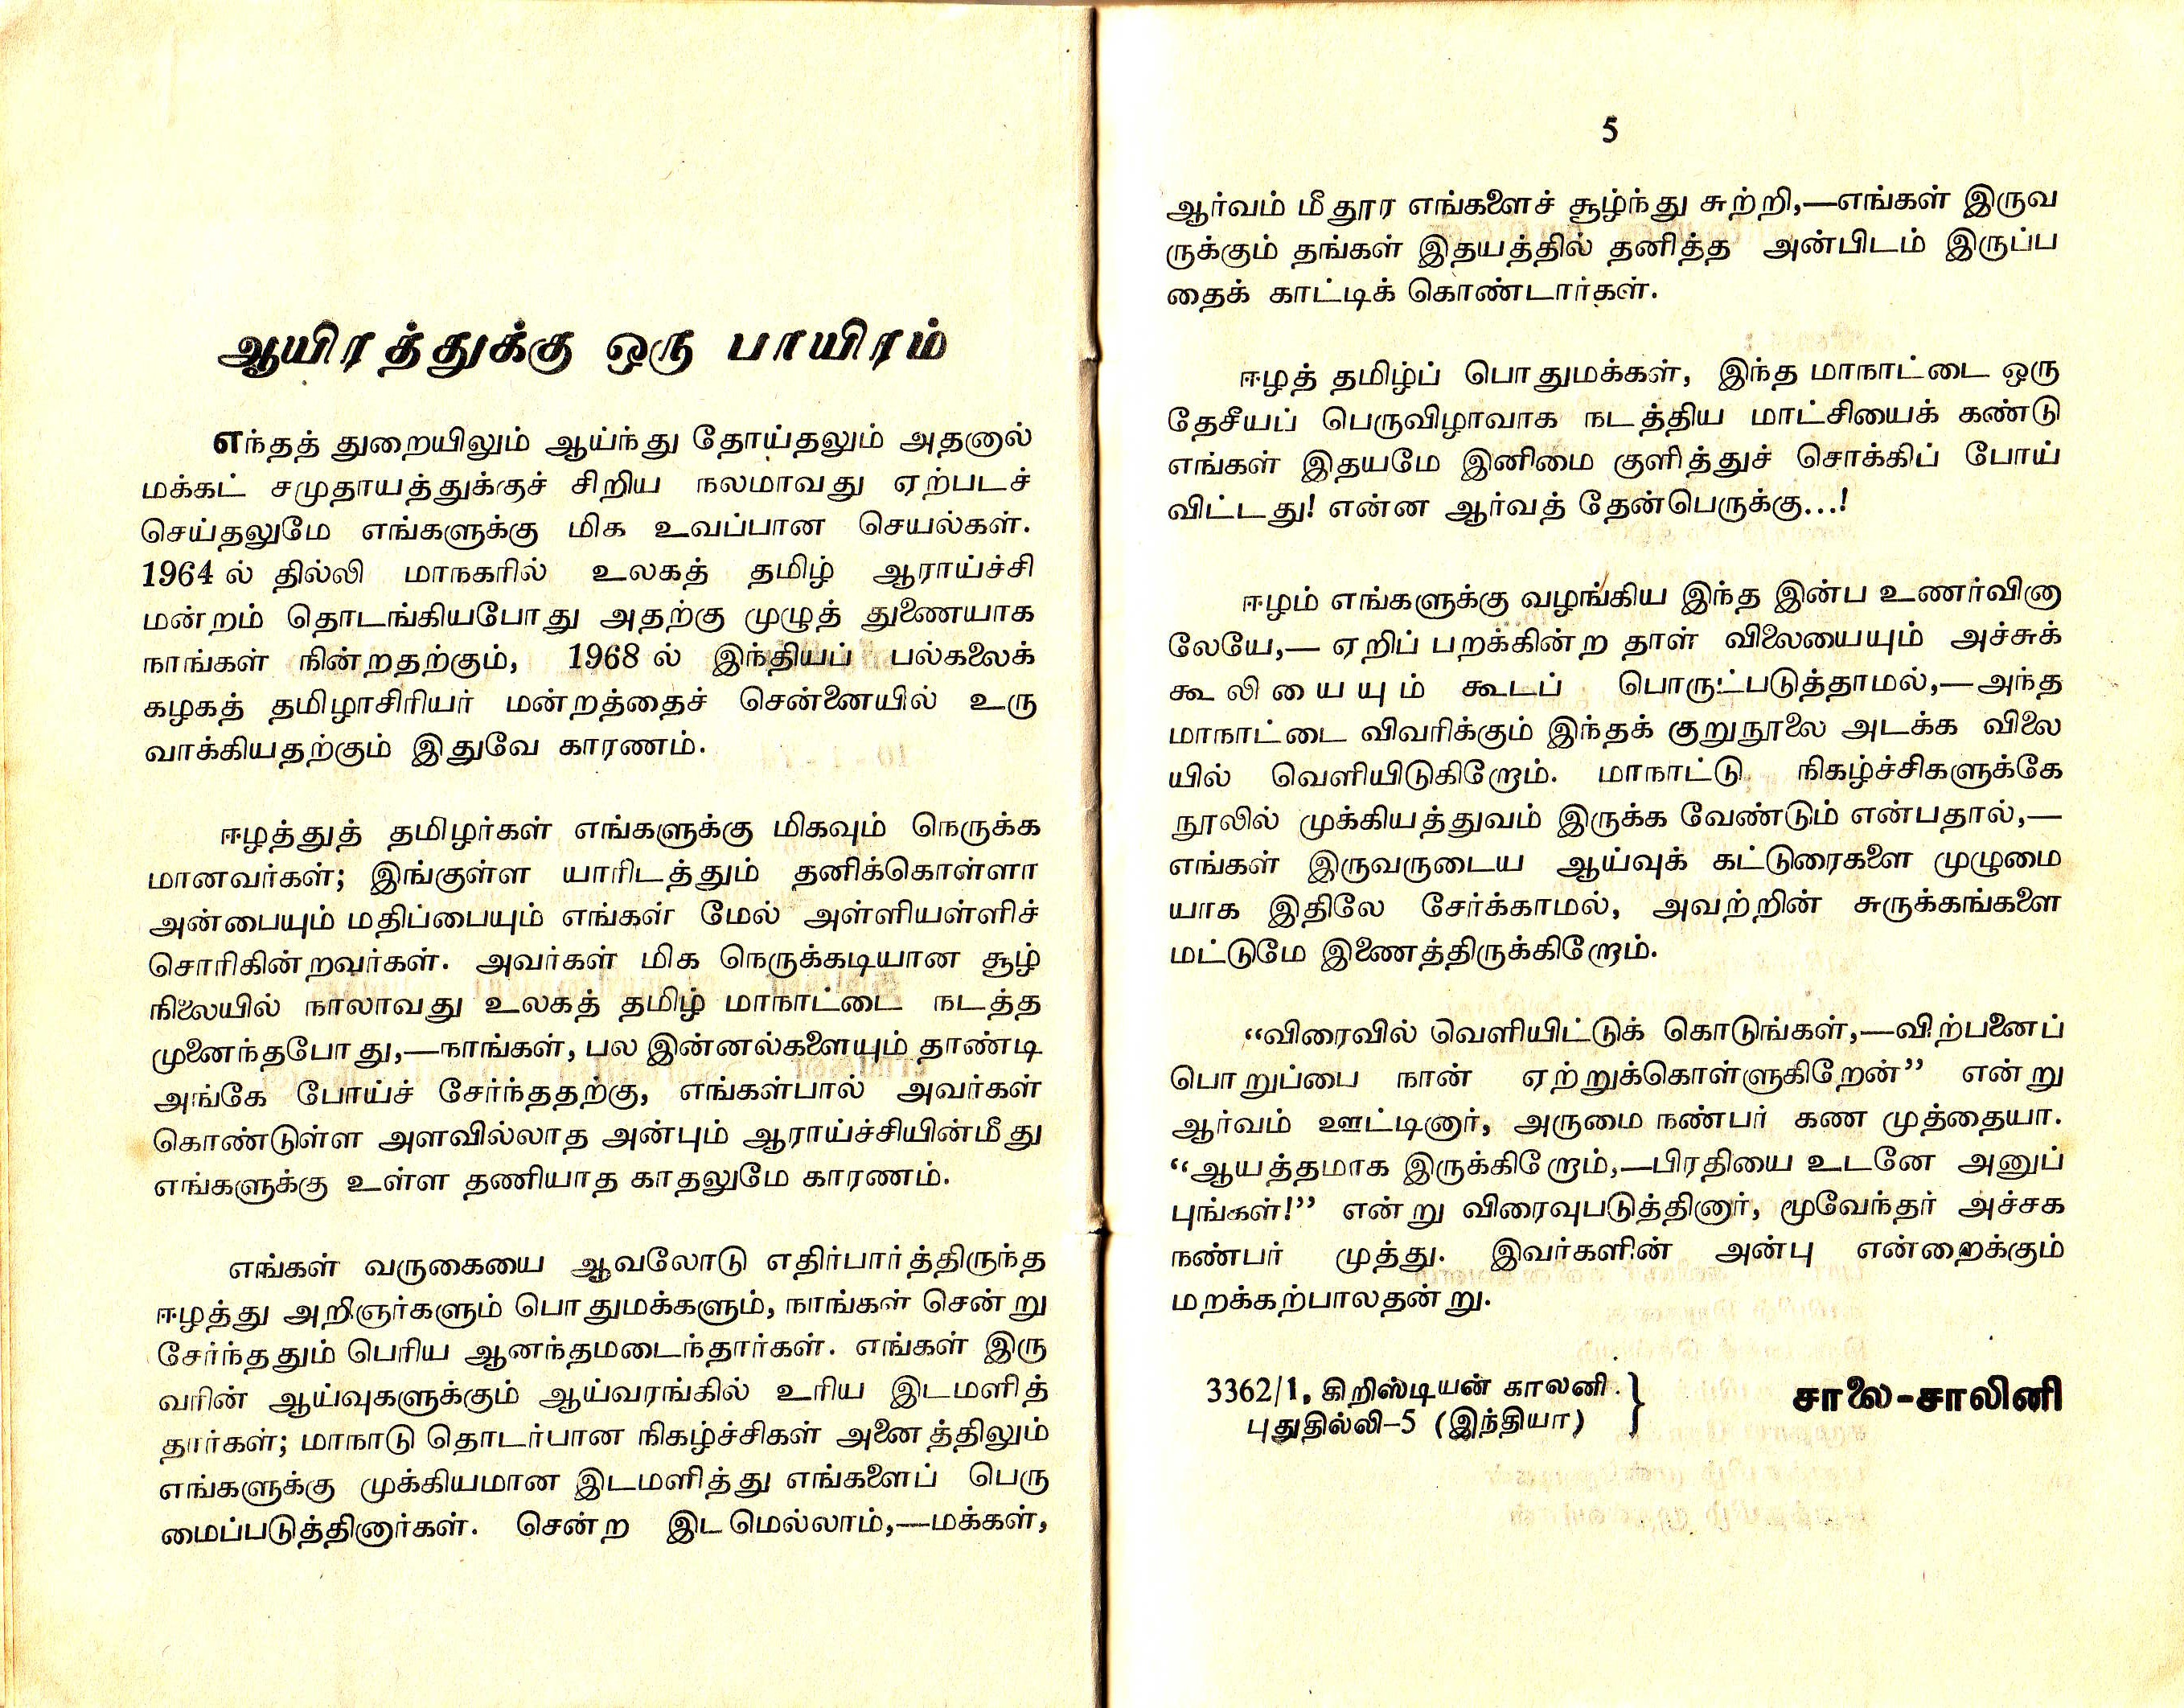 essay about bharathiyar in tamil language essay about bharathiyar in tamil language one day